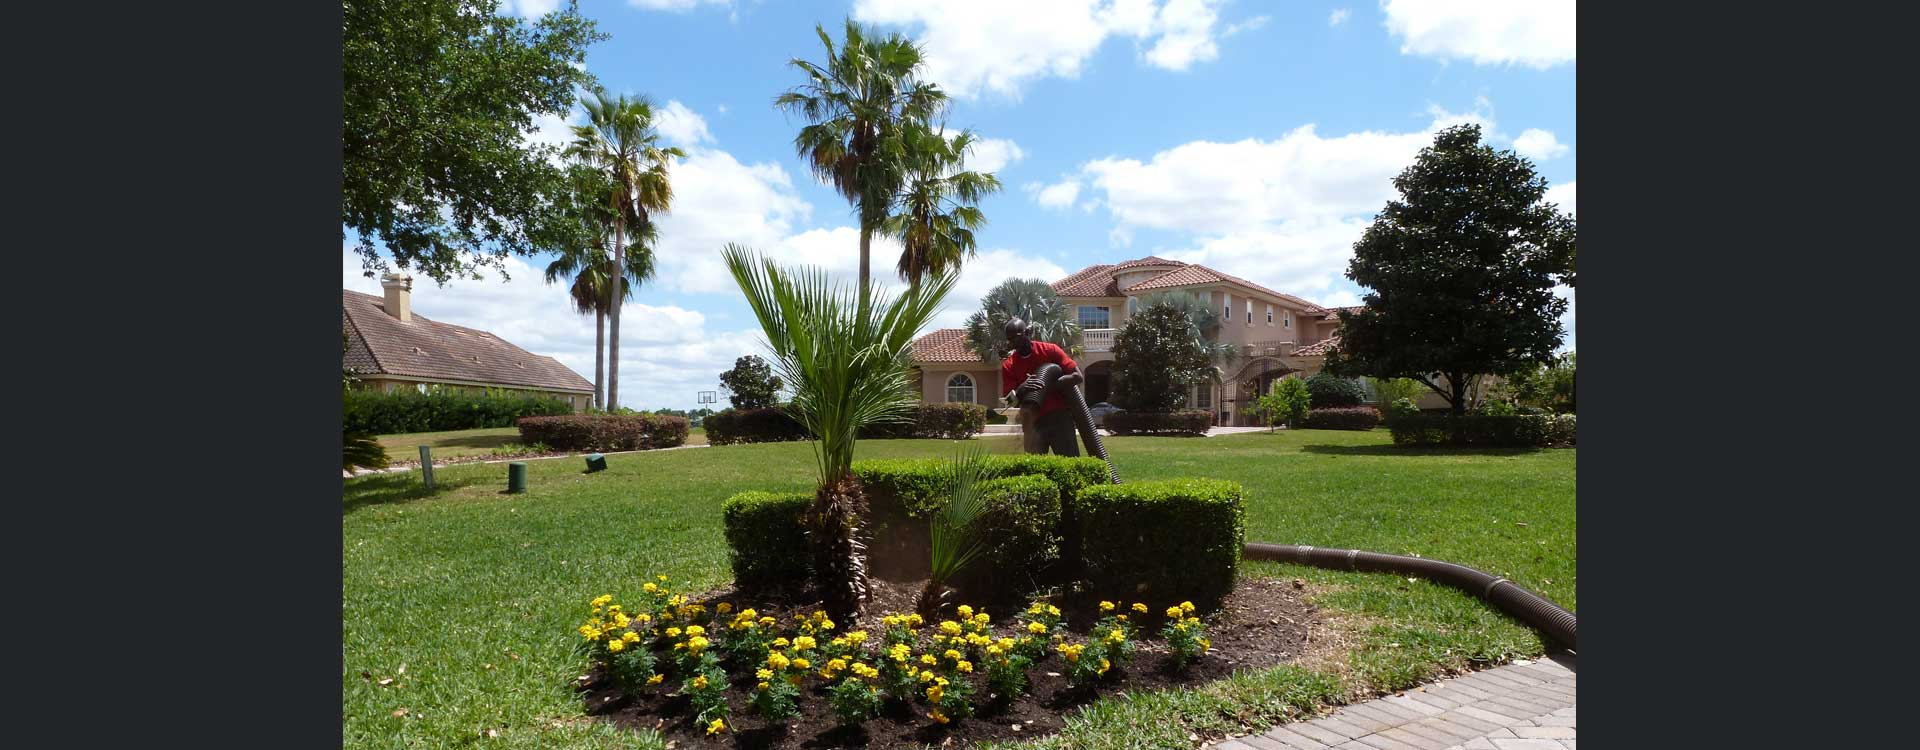 Cypress Mulch Orlando - Major Mulch Installations